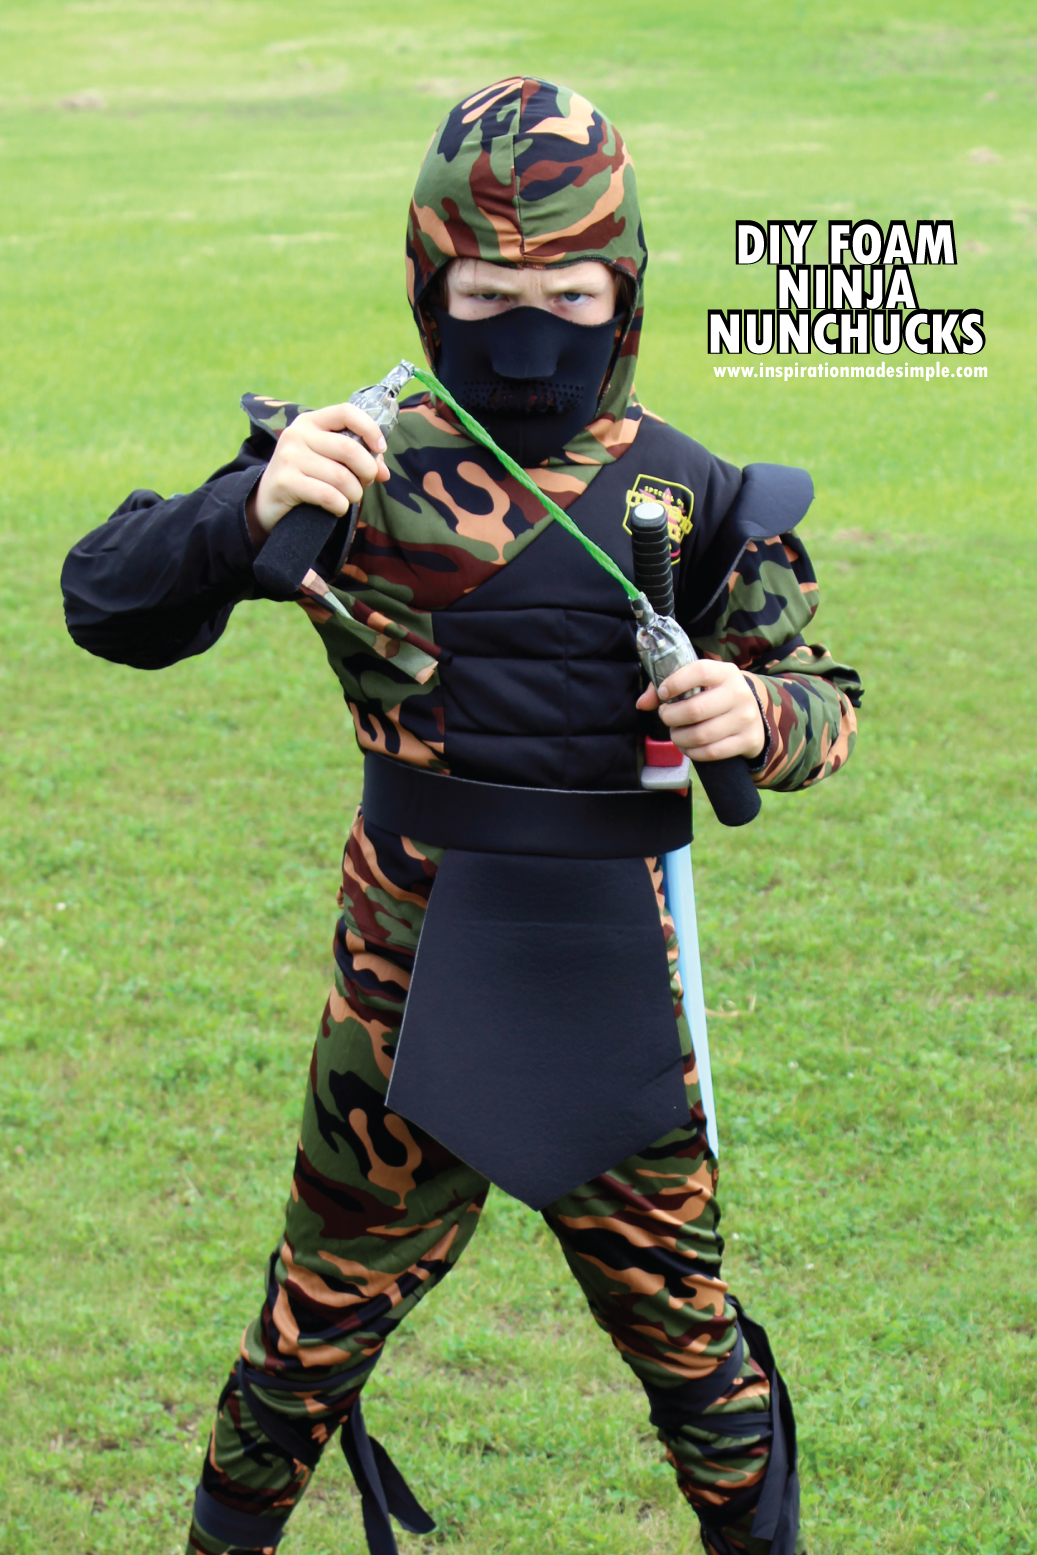 DIY Foam Ninja Nunchucks - perfect for a halloween costume accessory!